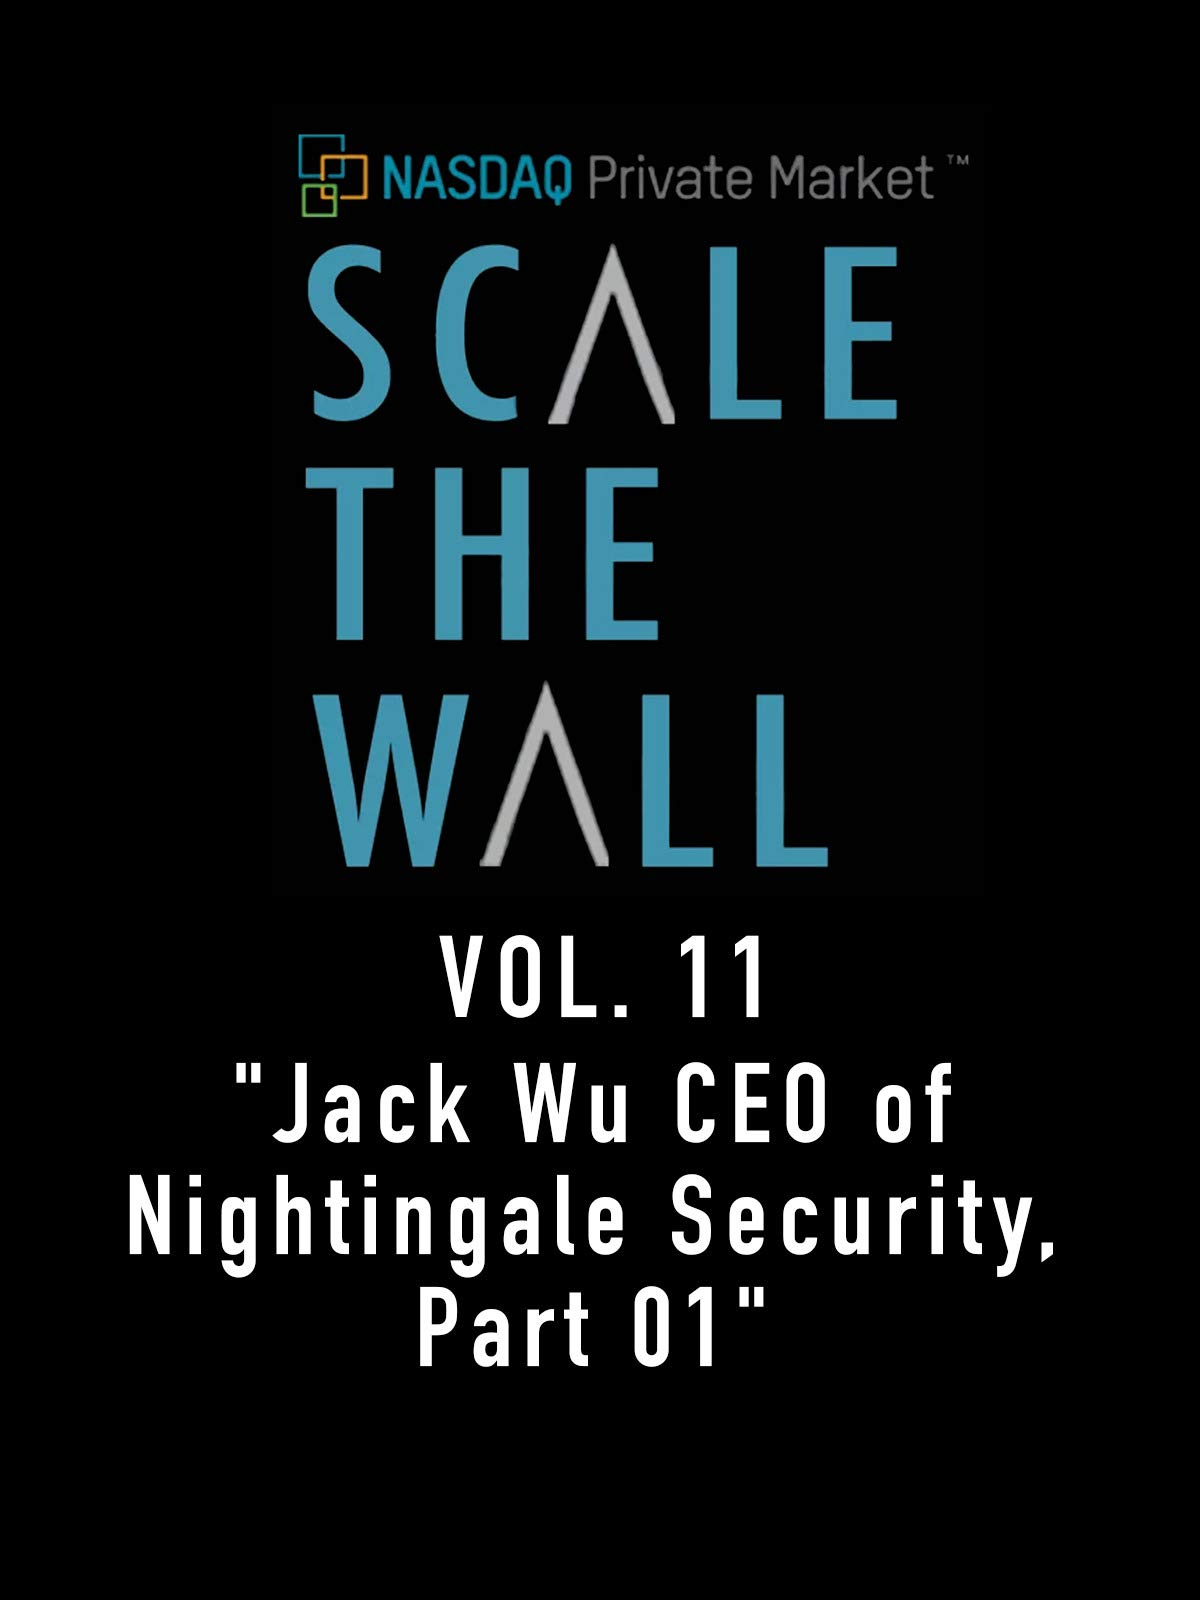 Scale the Wall Vol. 11